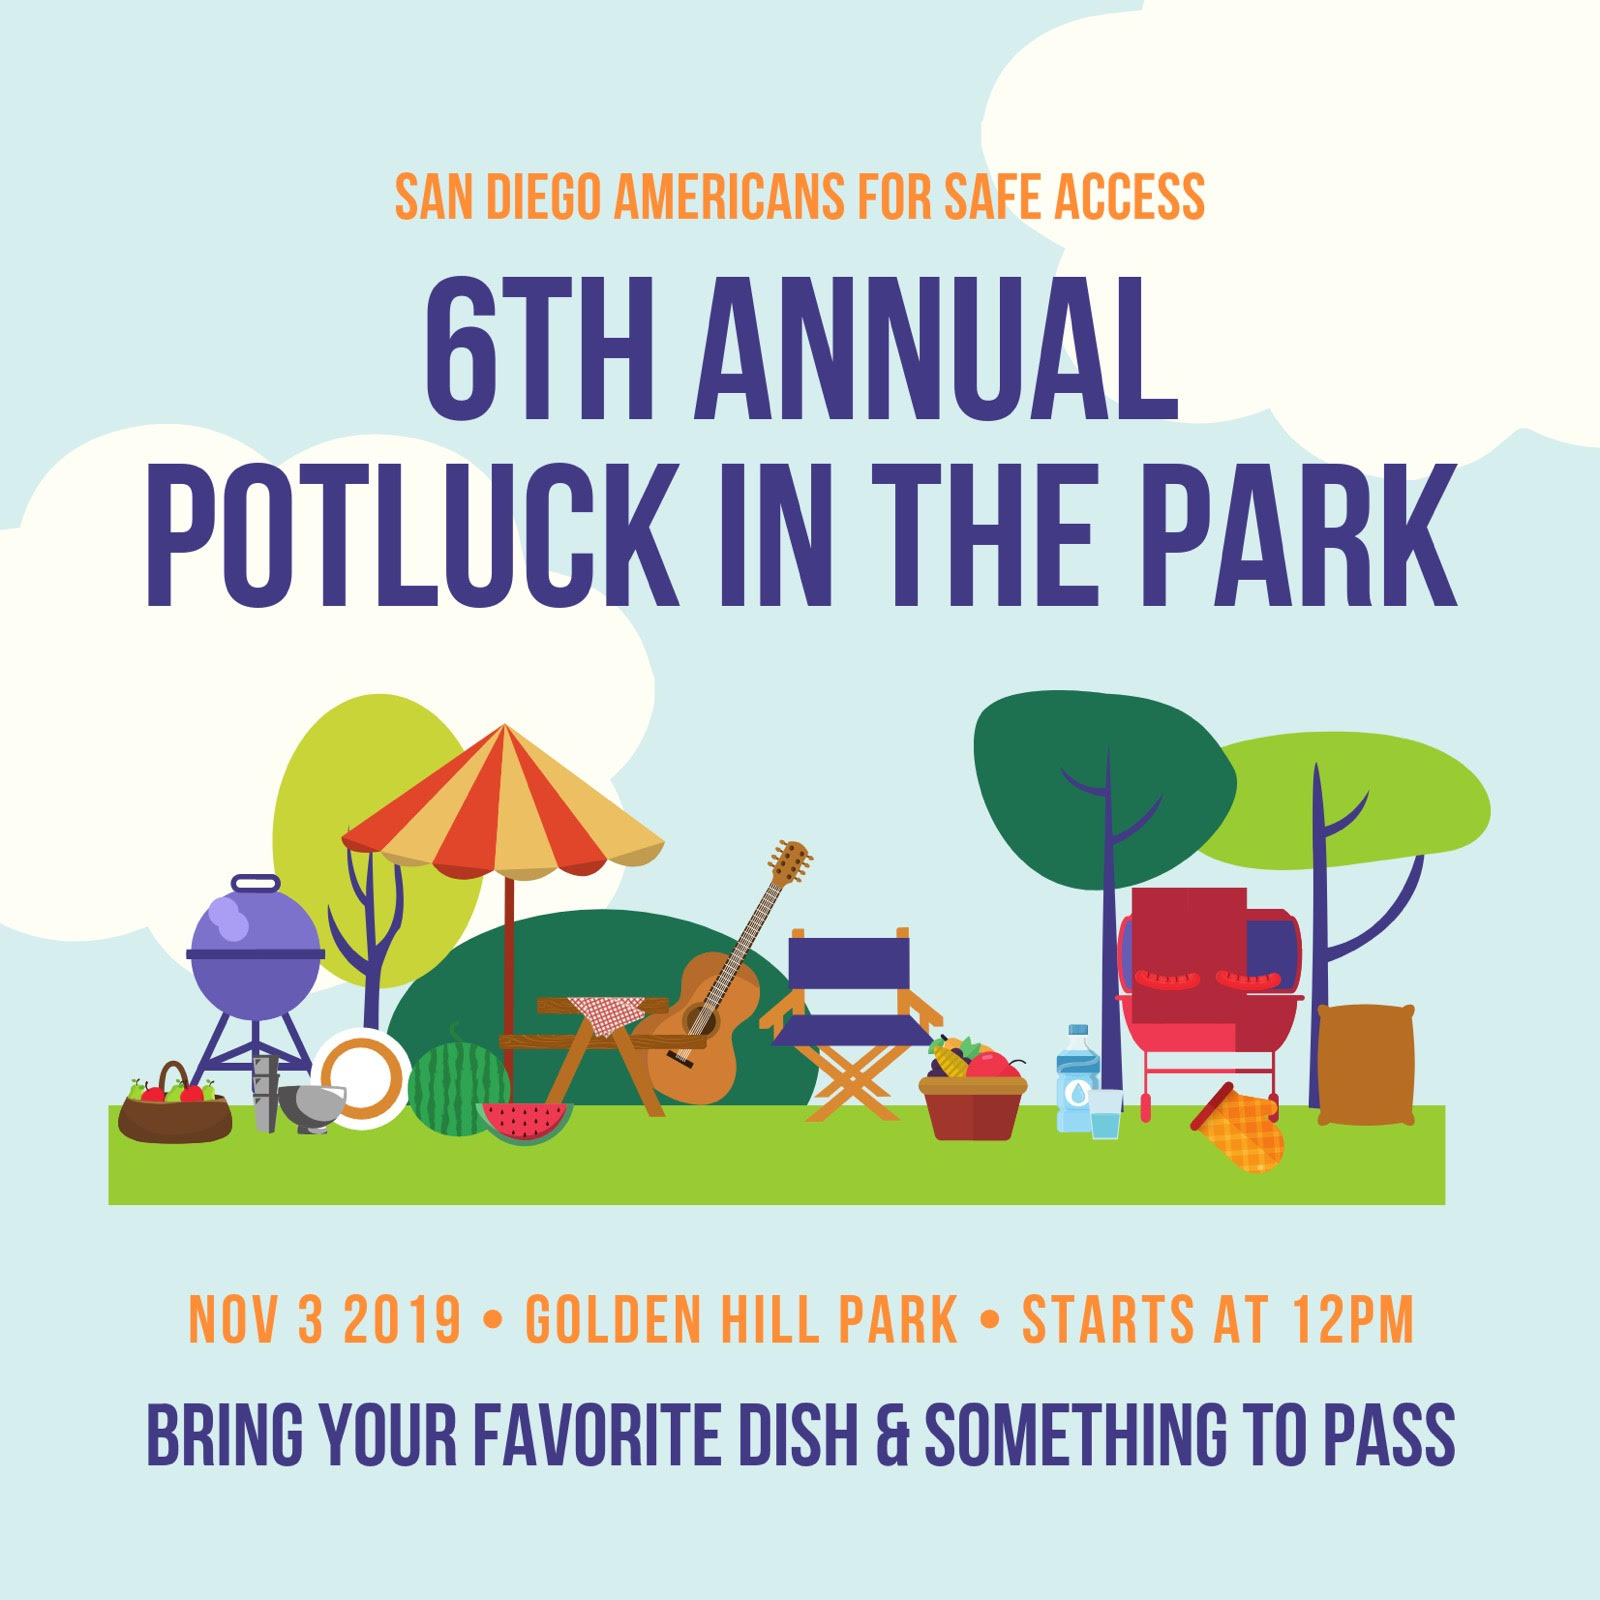 6th Annual Potluck in the Park, hosted by San Diego American for Safe Access